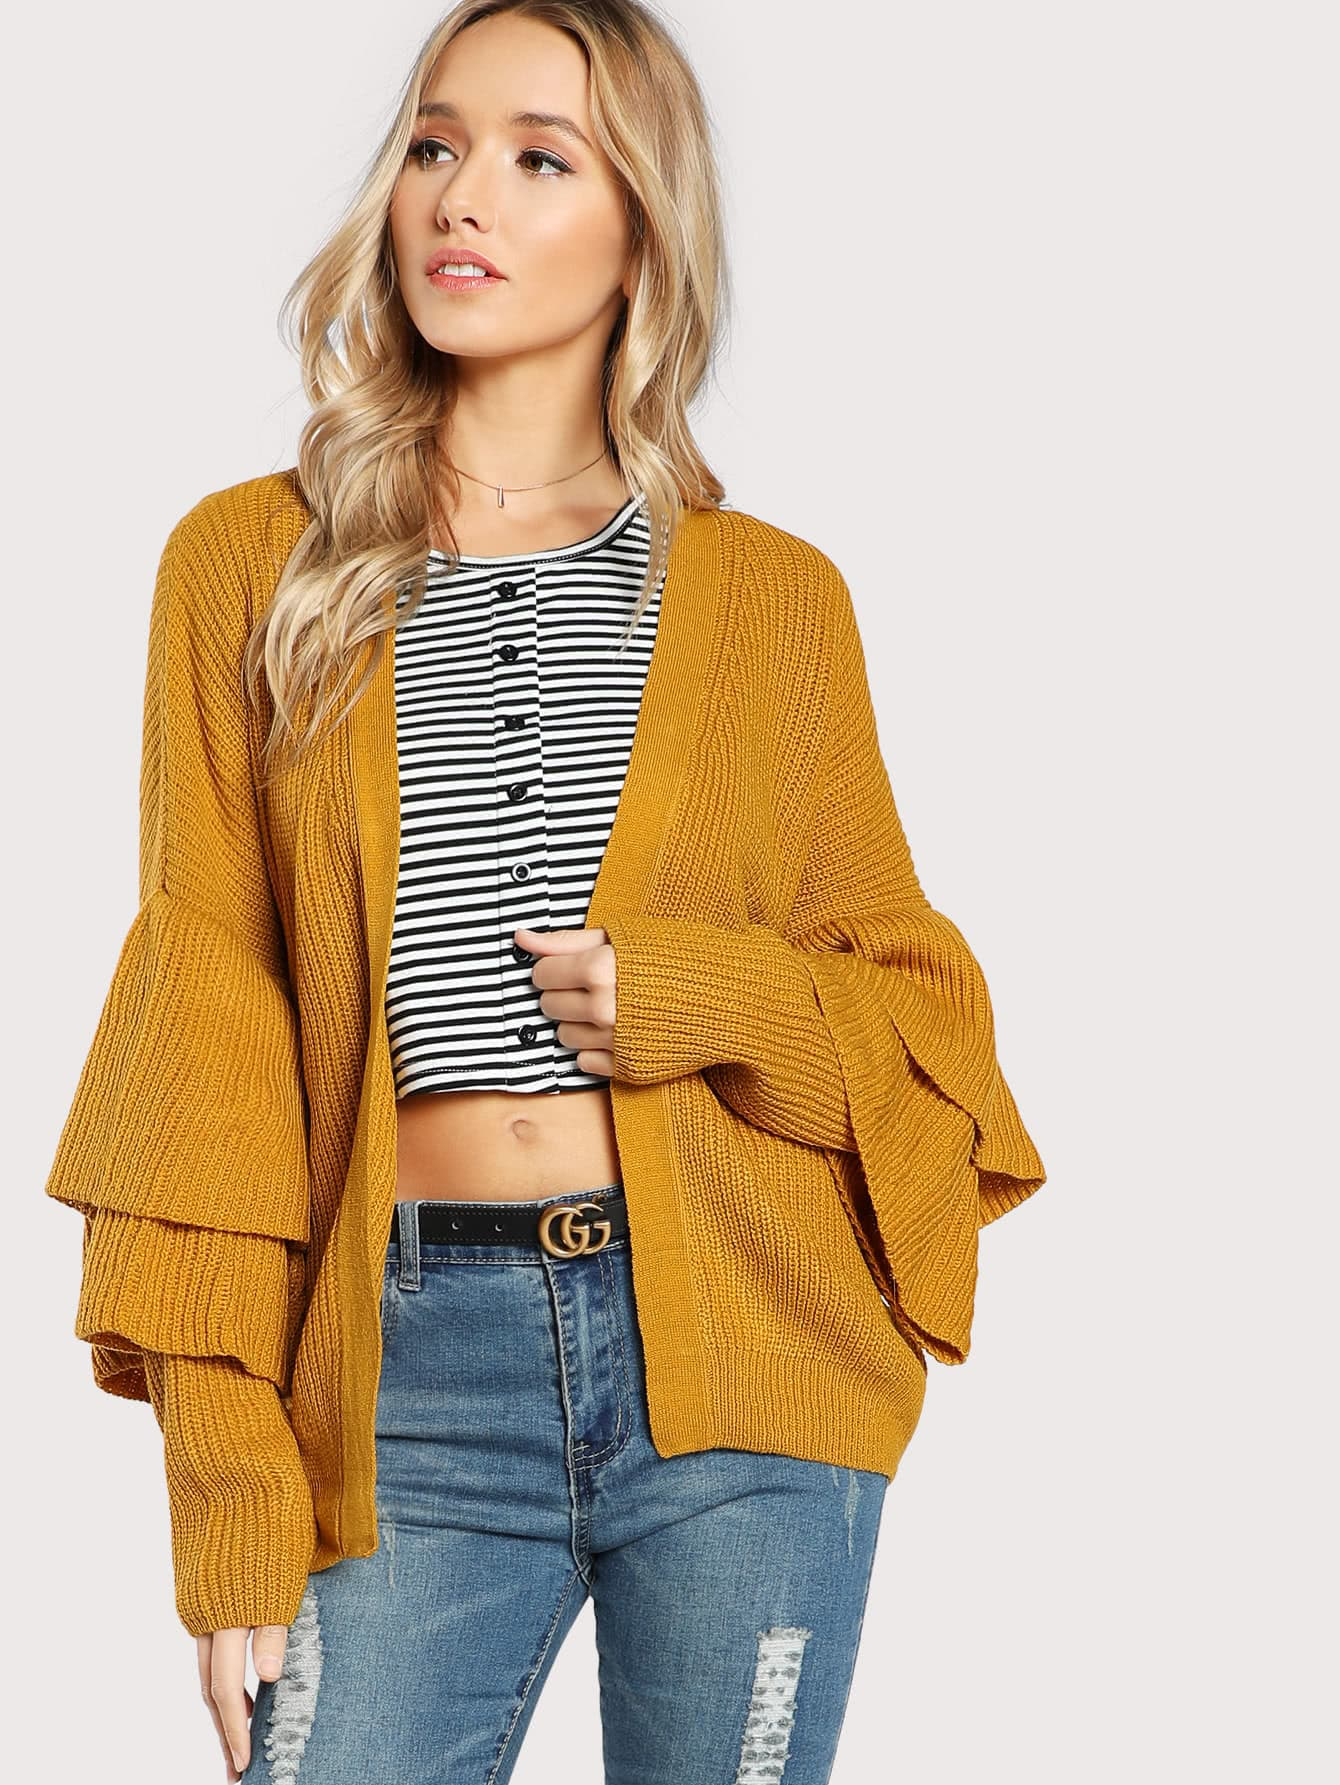 Tiered Sleeve Cardigan Sweater MUSTARD -SheIn(Sheinside)